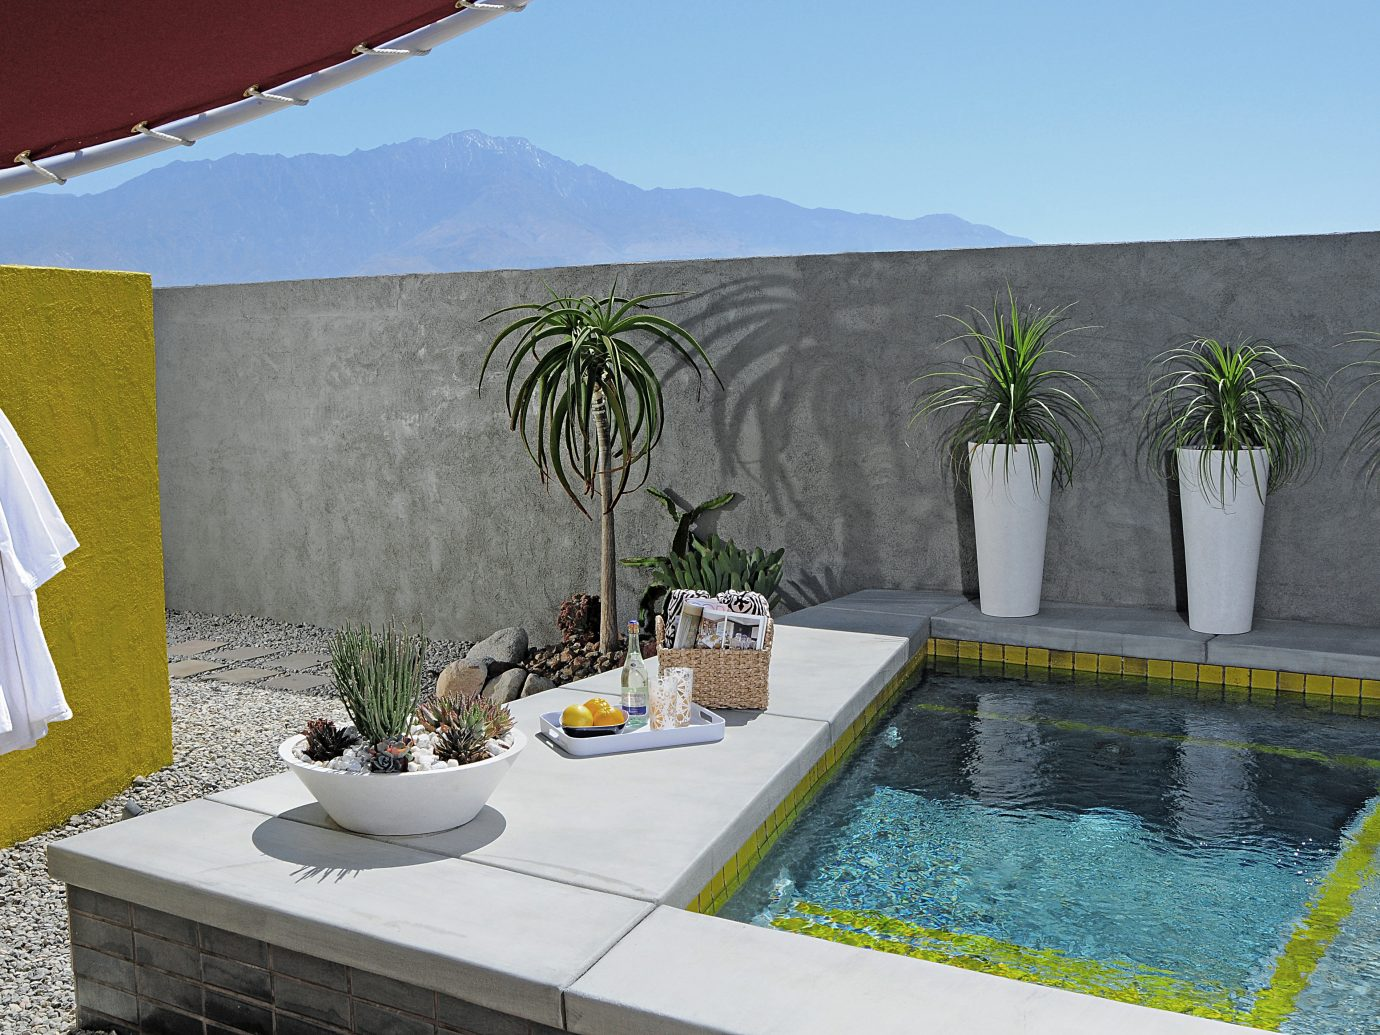 Hotels Lounge Luxury Modern Pool Style + Design Trip Ideas swimming pool property estate house Villa backyard home interior design real estate mansion cottage plant decorated